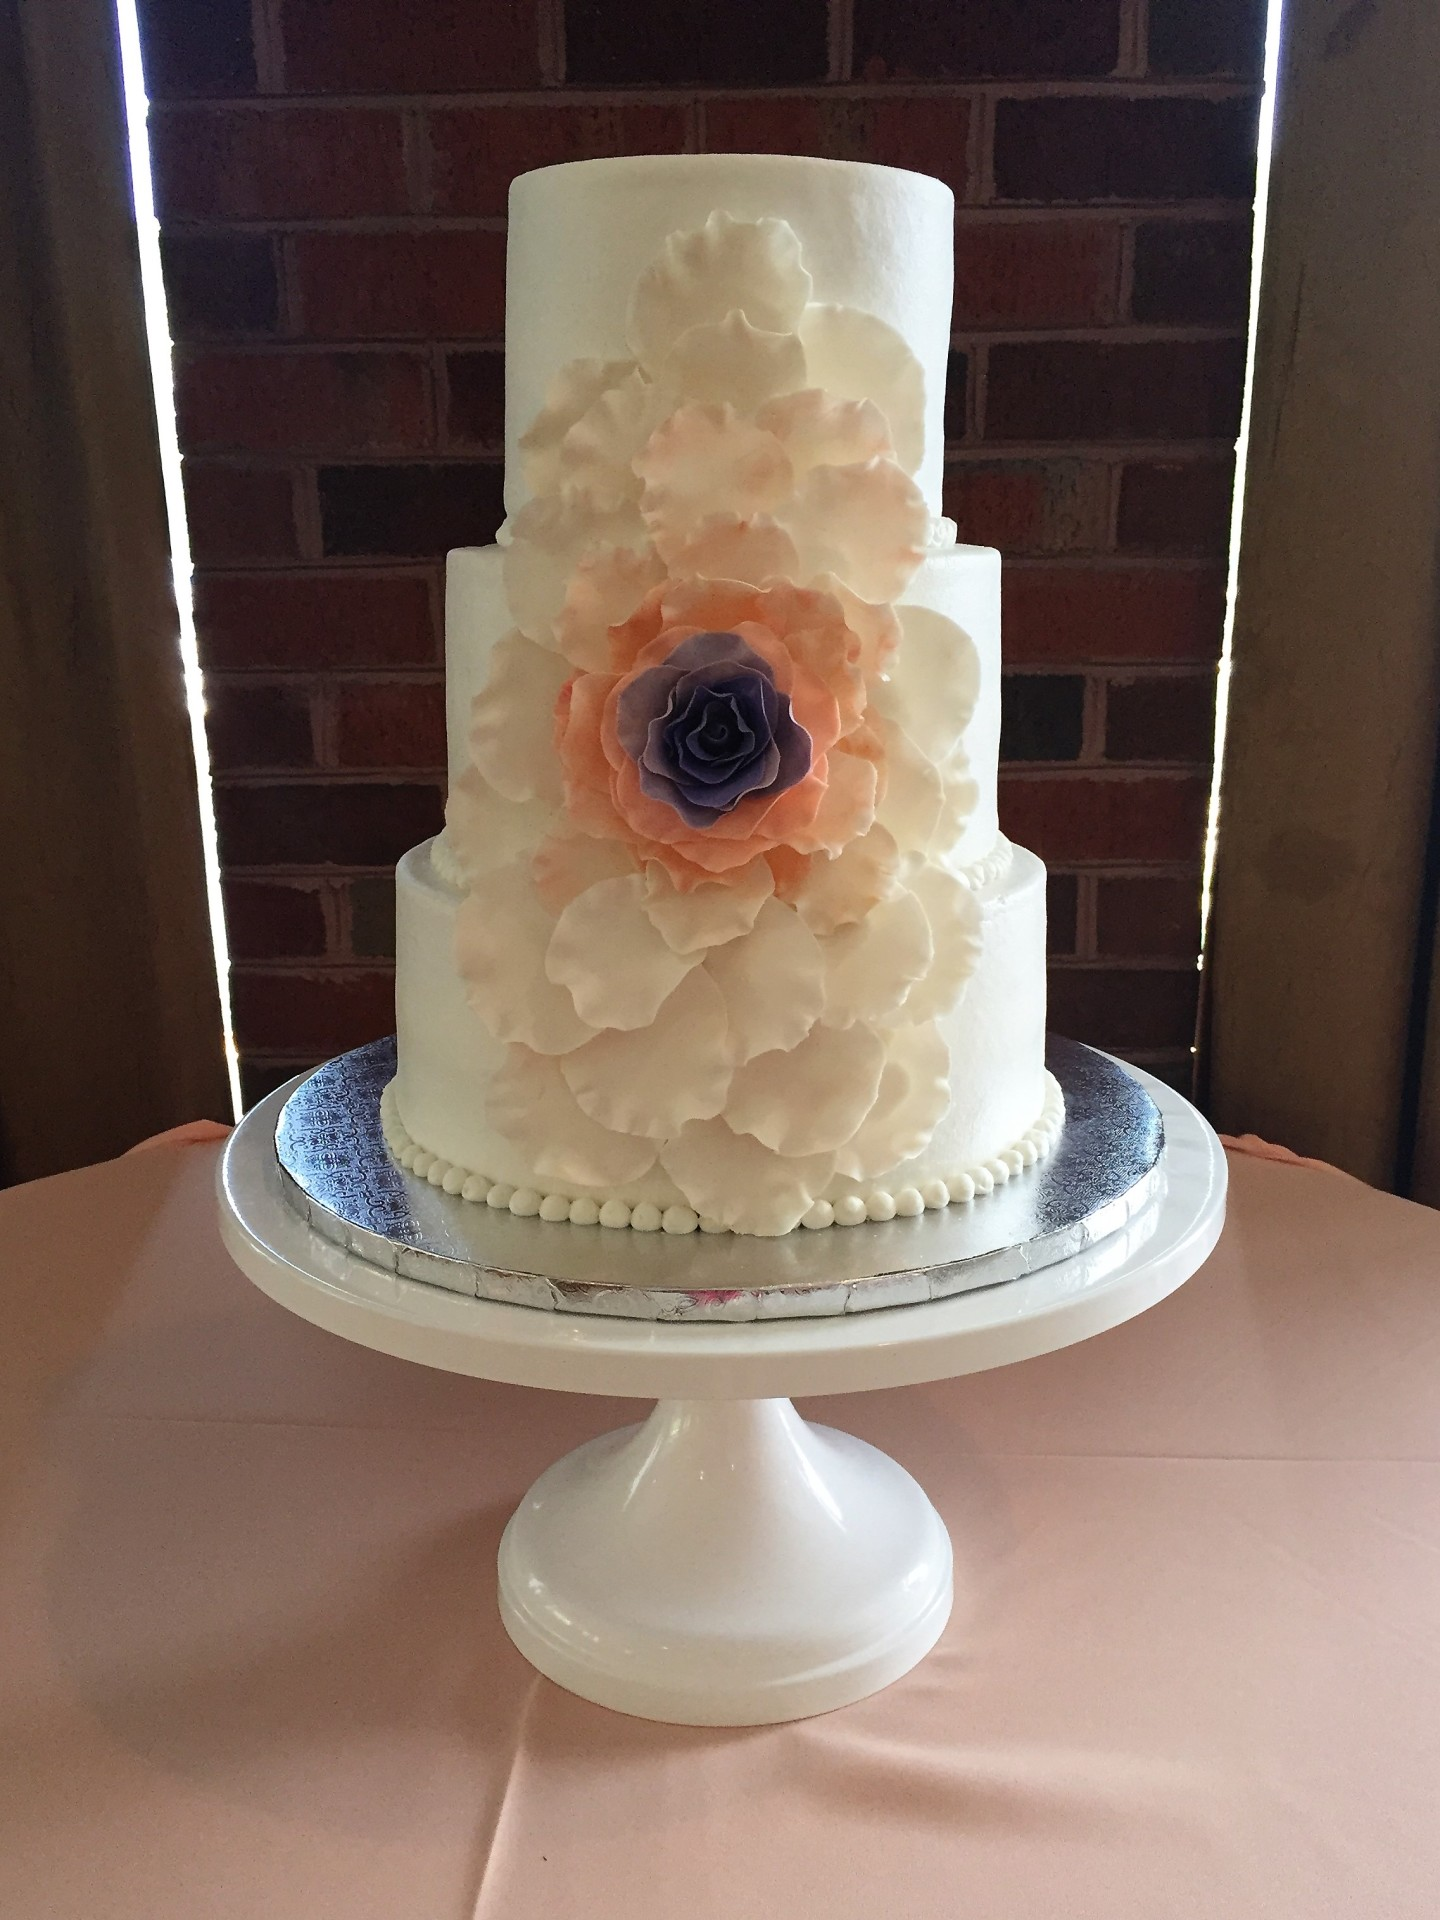 Large extended flower buttercream